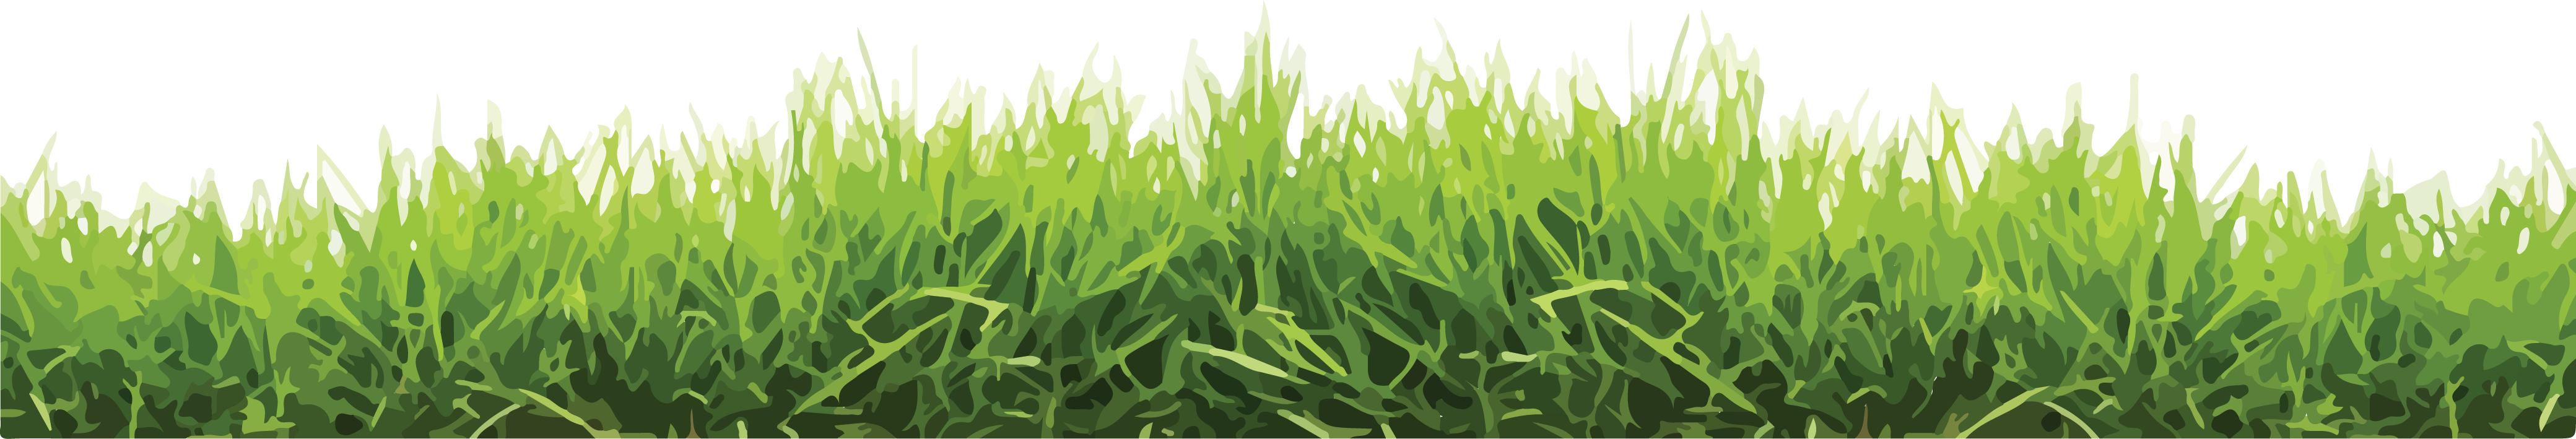 Grass background artwork